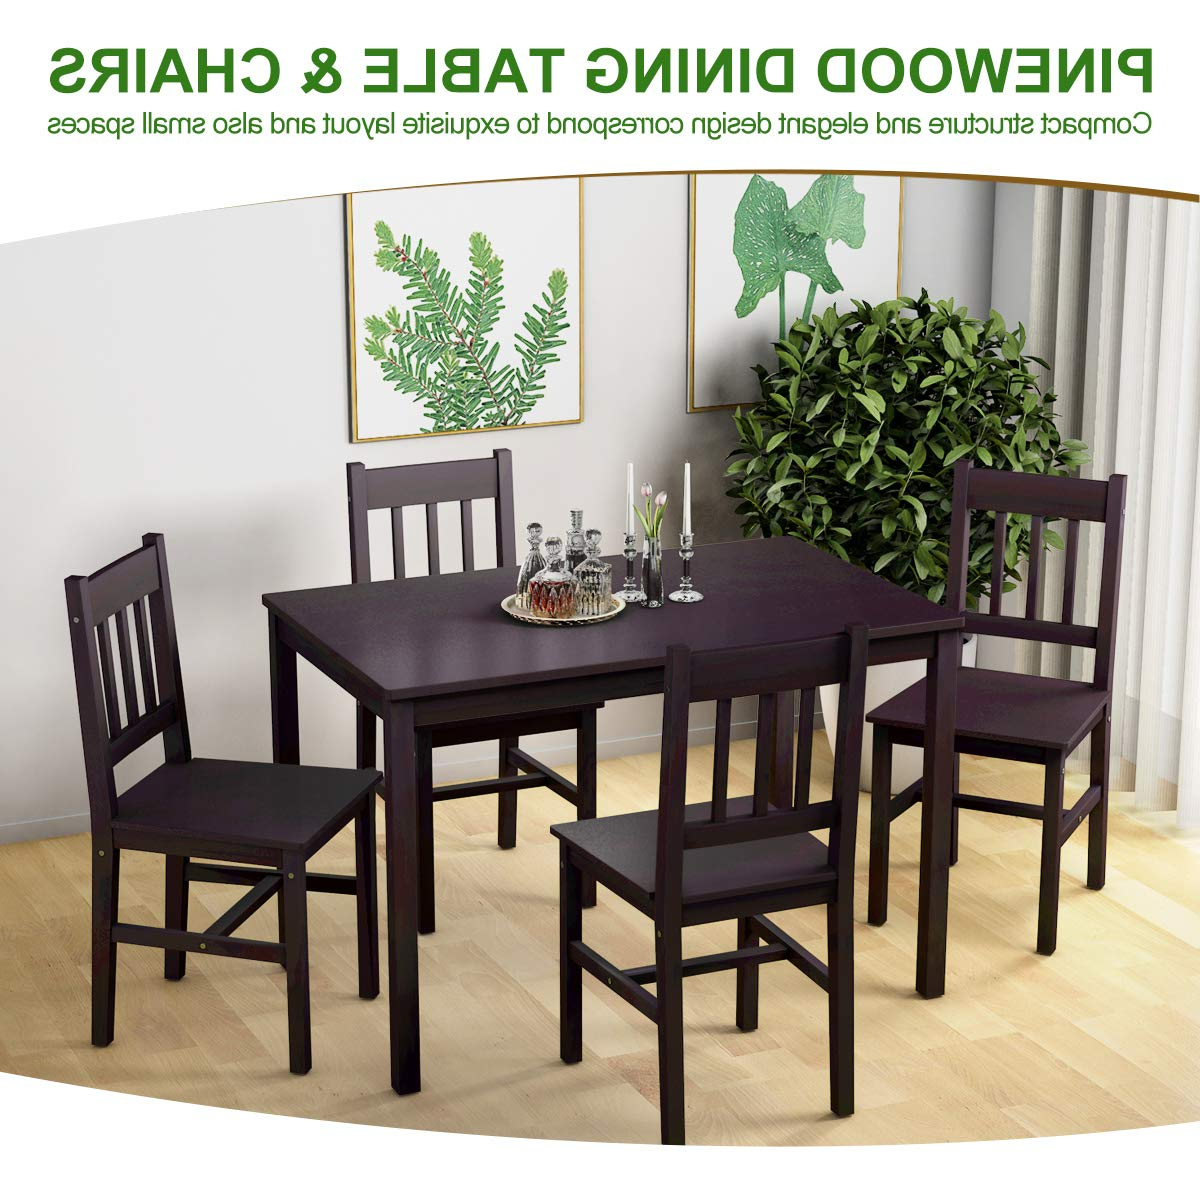 Most Recently Released Giantex 5 Piece Wood Dining Table Set 4 Chairs Home Kitchen With Regard To Sundberg 5 Piece Solid Wood Dining Sets (View 15 of 25)